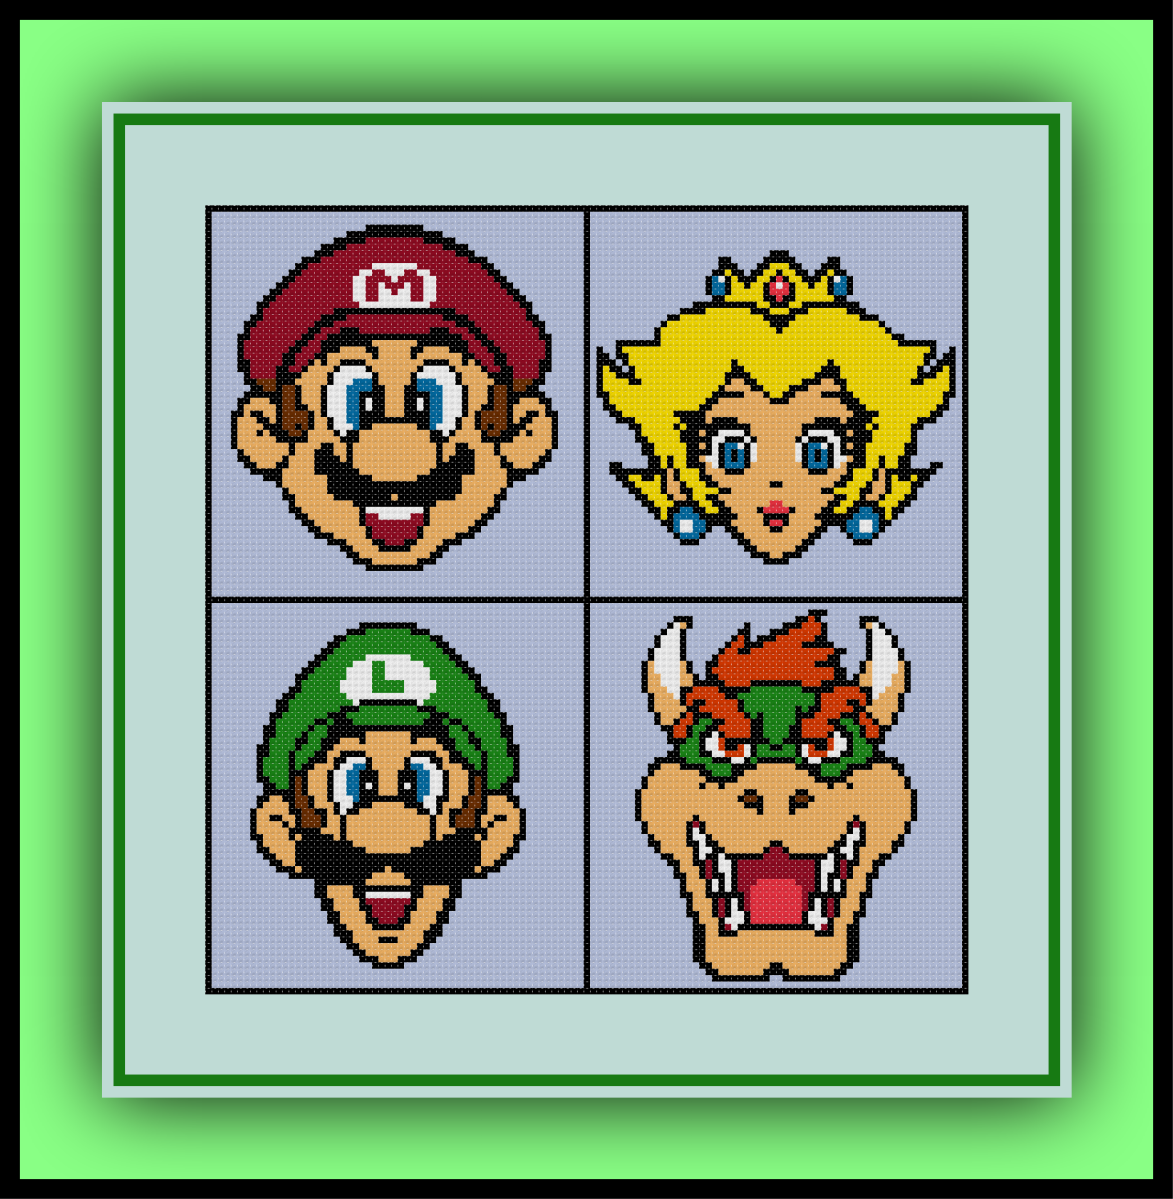 Free Mario Bros. Cross Stitch Pattern Mario, Luigi, Princess Peach, and Bowser